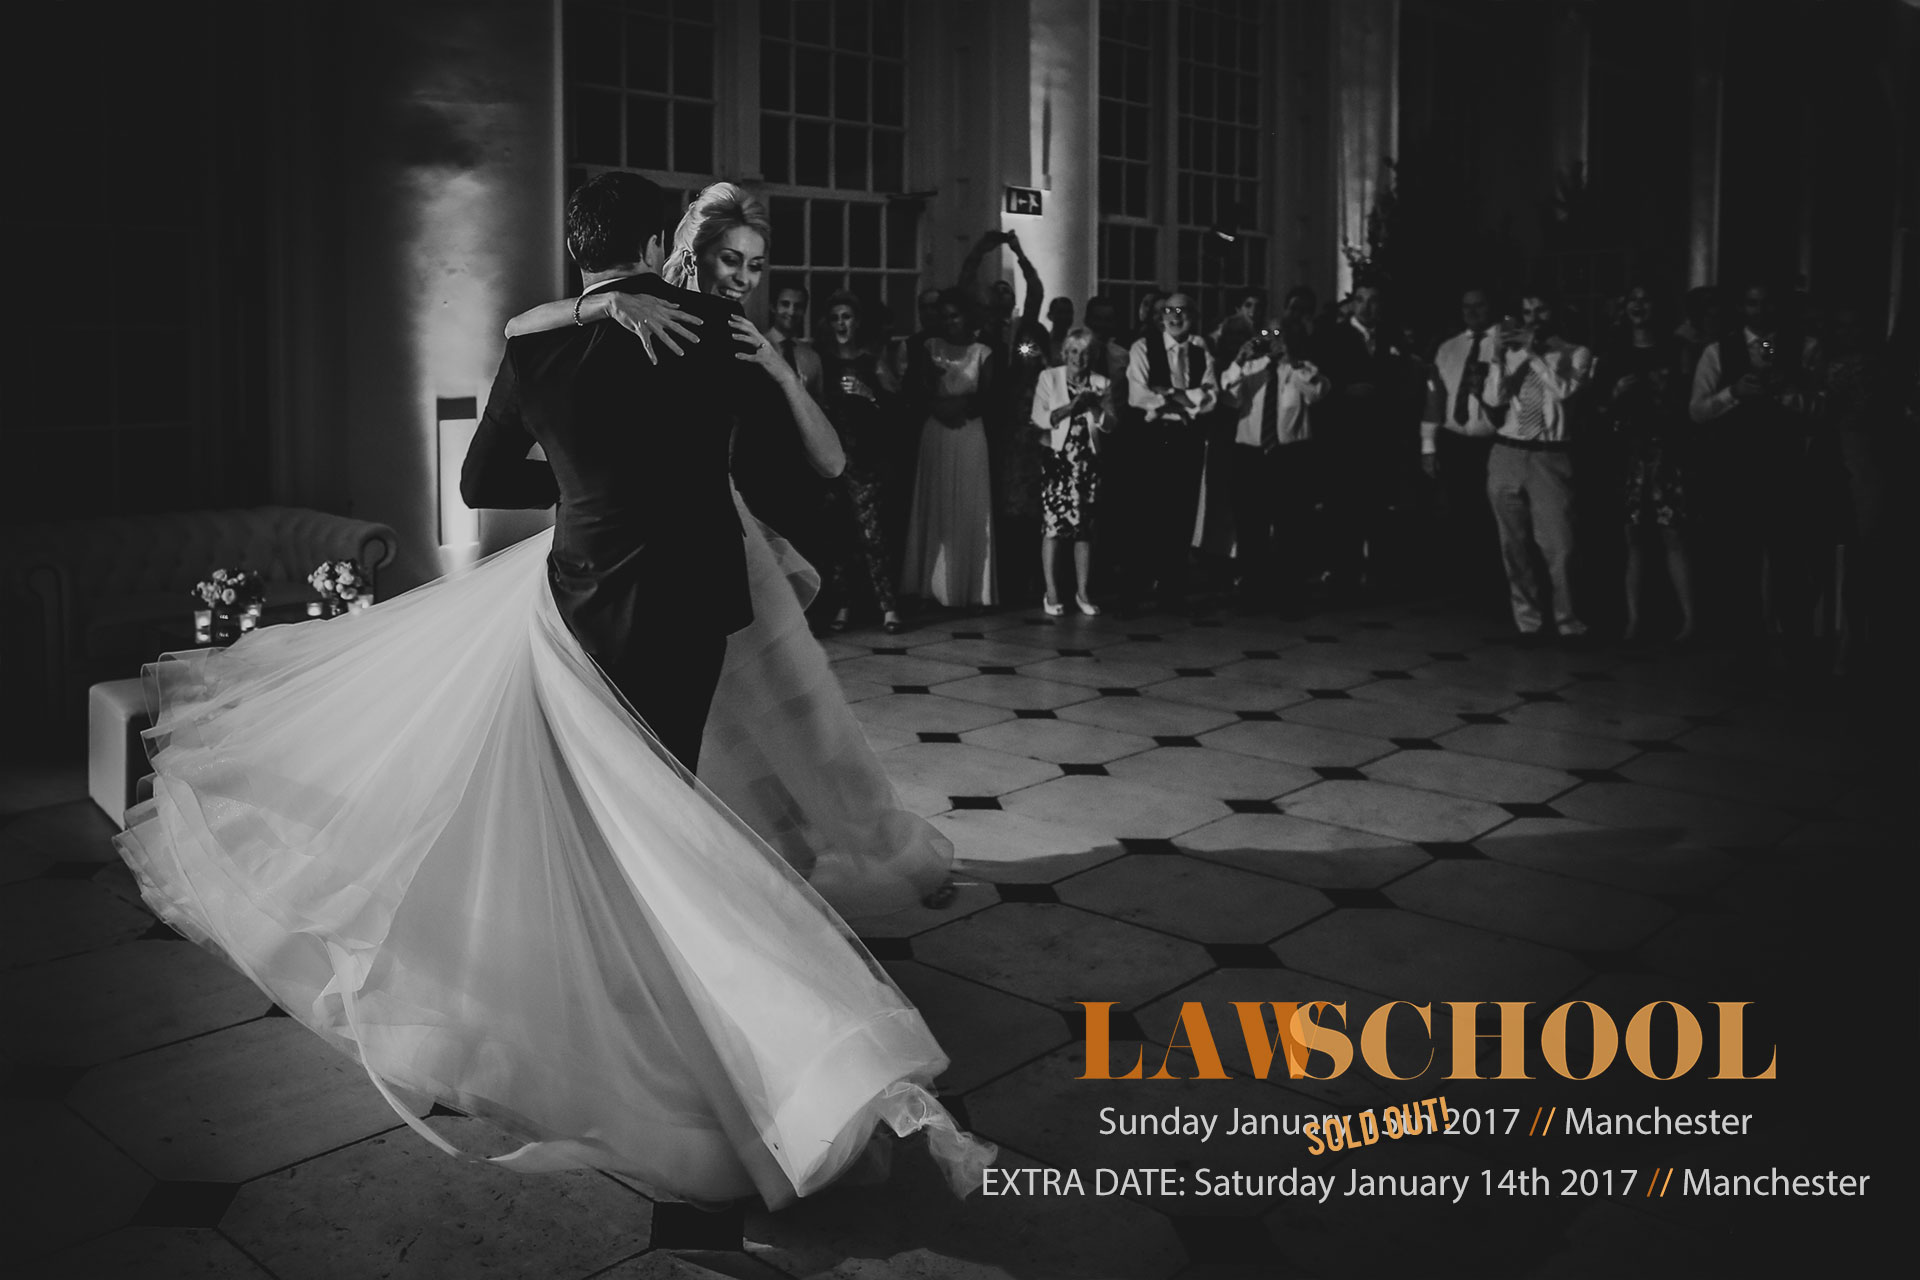 Law School / Wedding Photography Workshop / January 14th 2017 / Manchester, UK